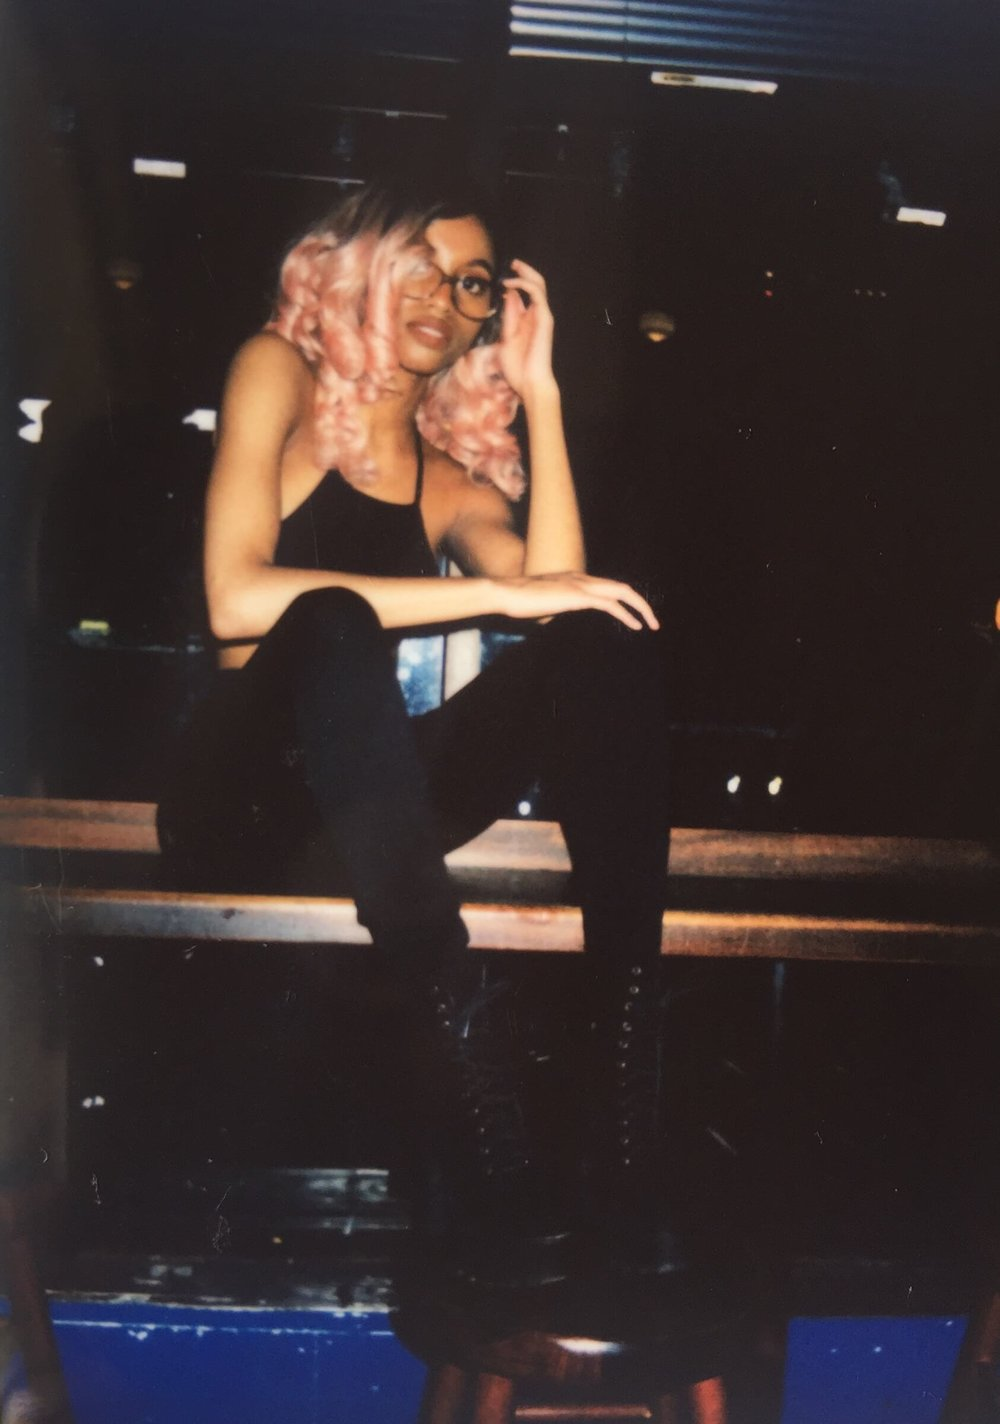 MUDiiGAL - Maryland-based songstress whose dreamy, 3 AM soundscape belies a sensual and passionate personality.